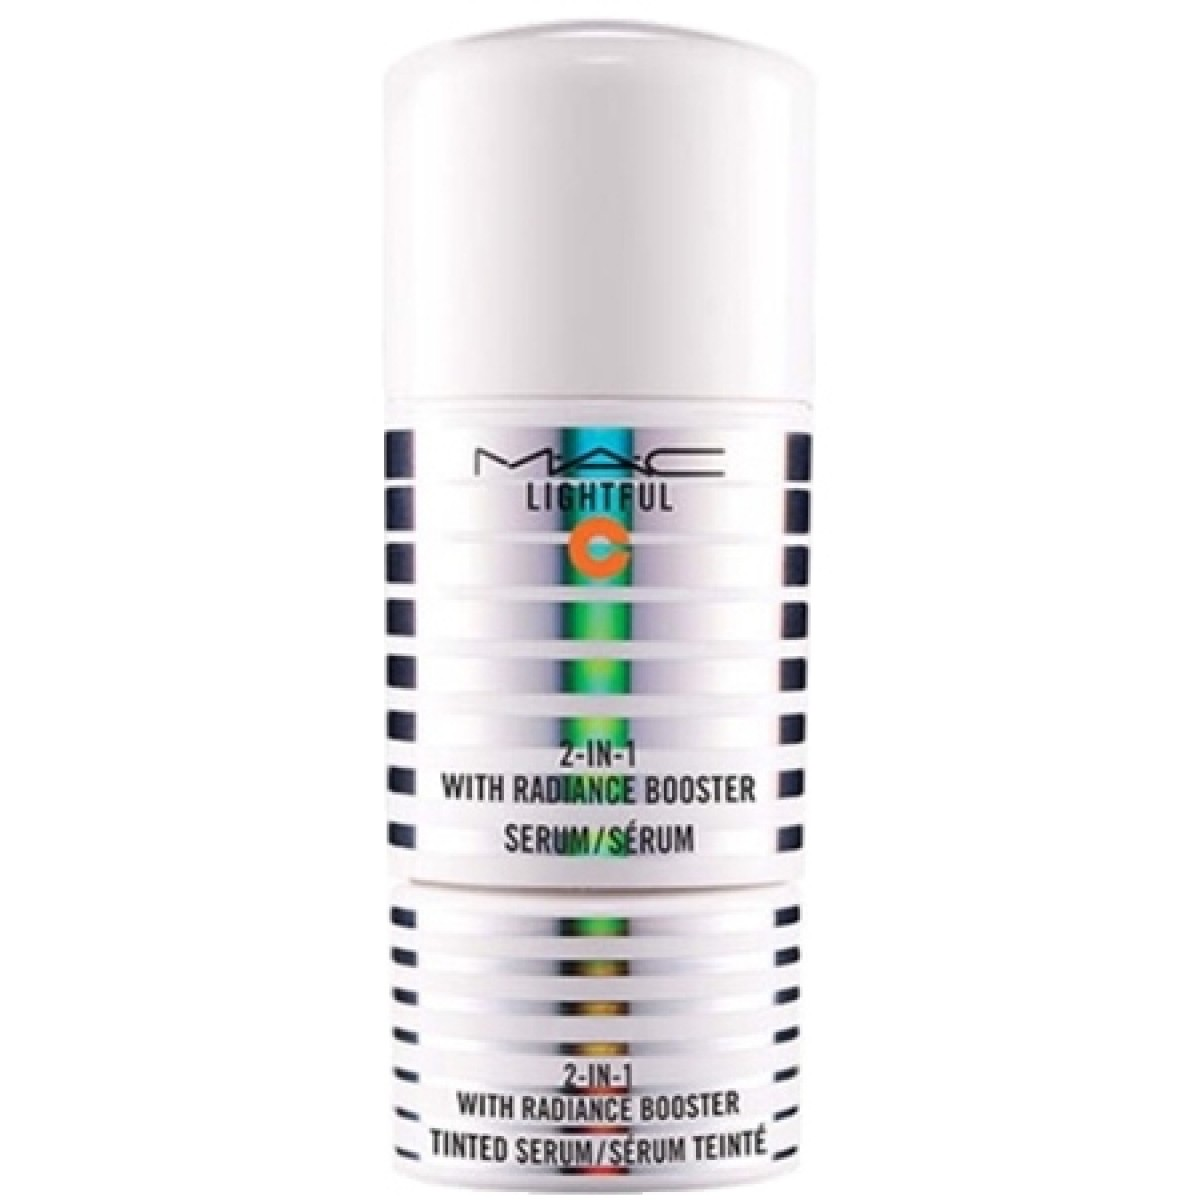 Lightful c 2 in 1 tint and serum with radiance booster  serum